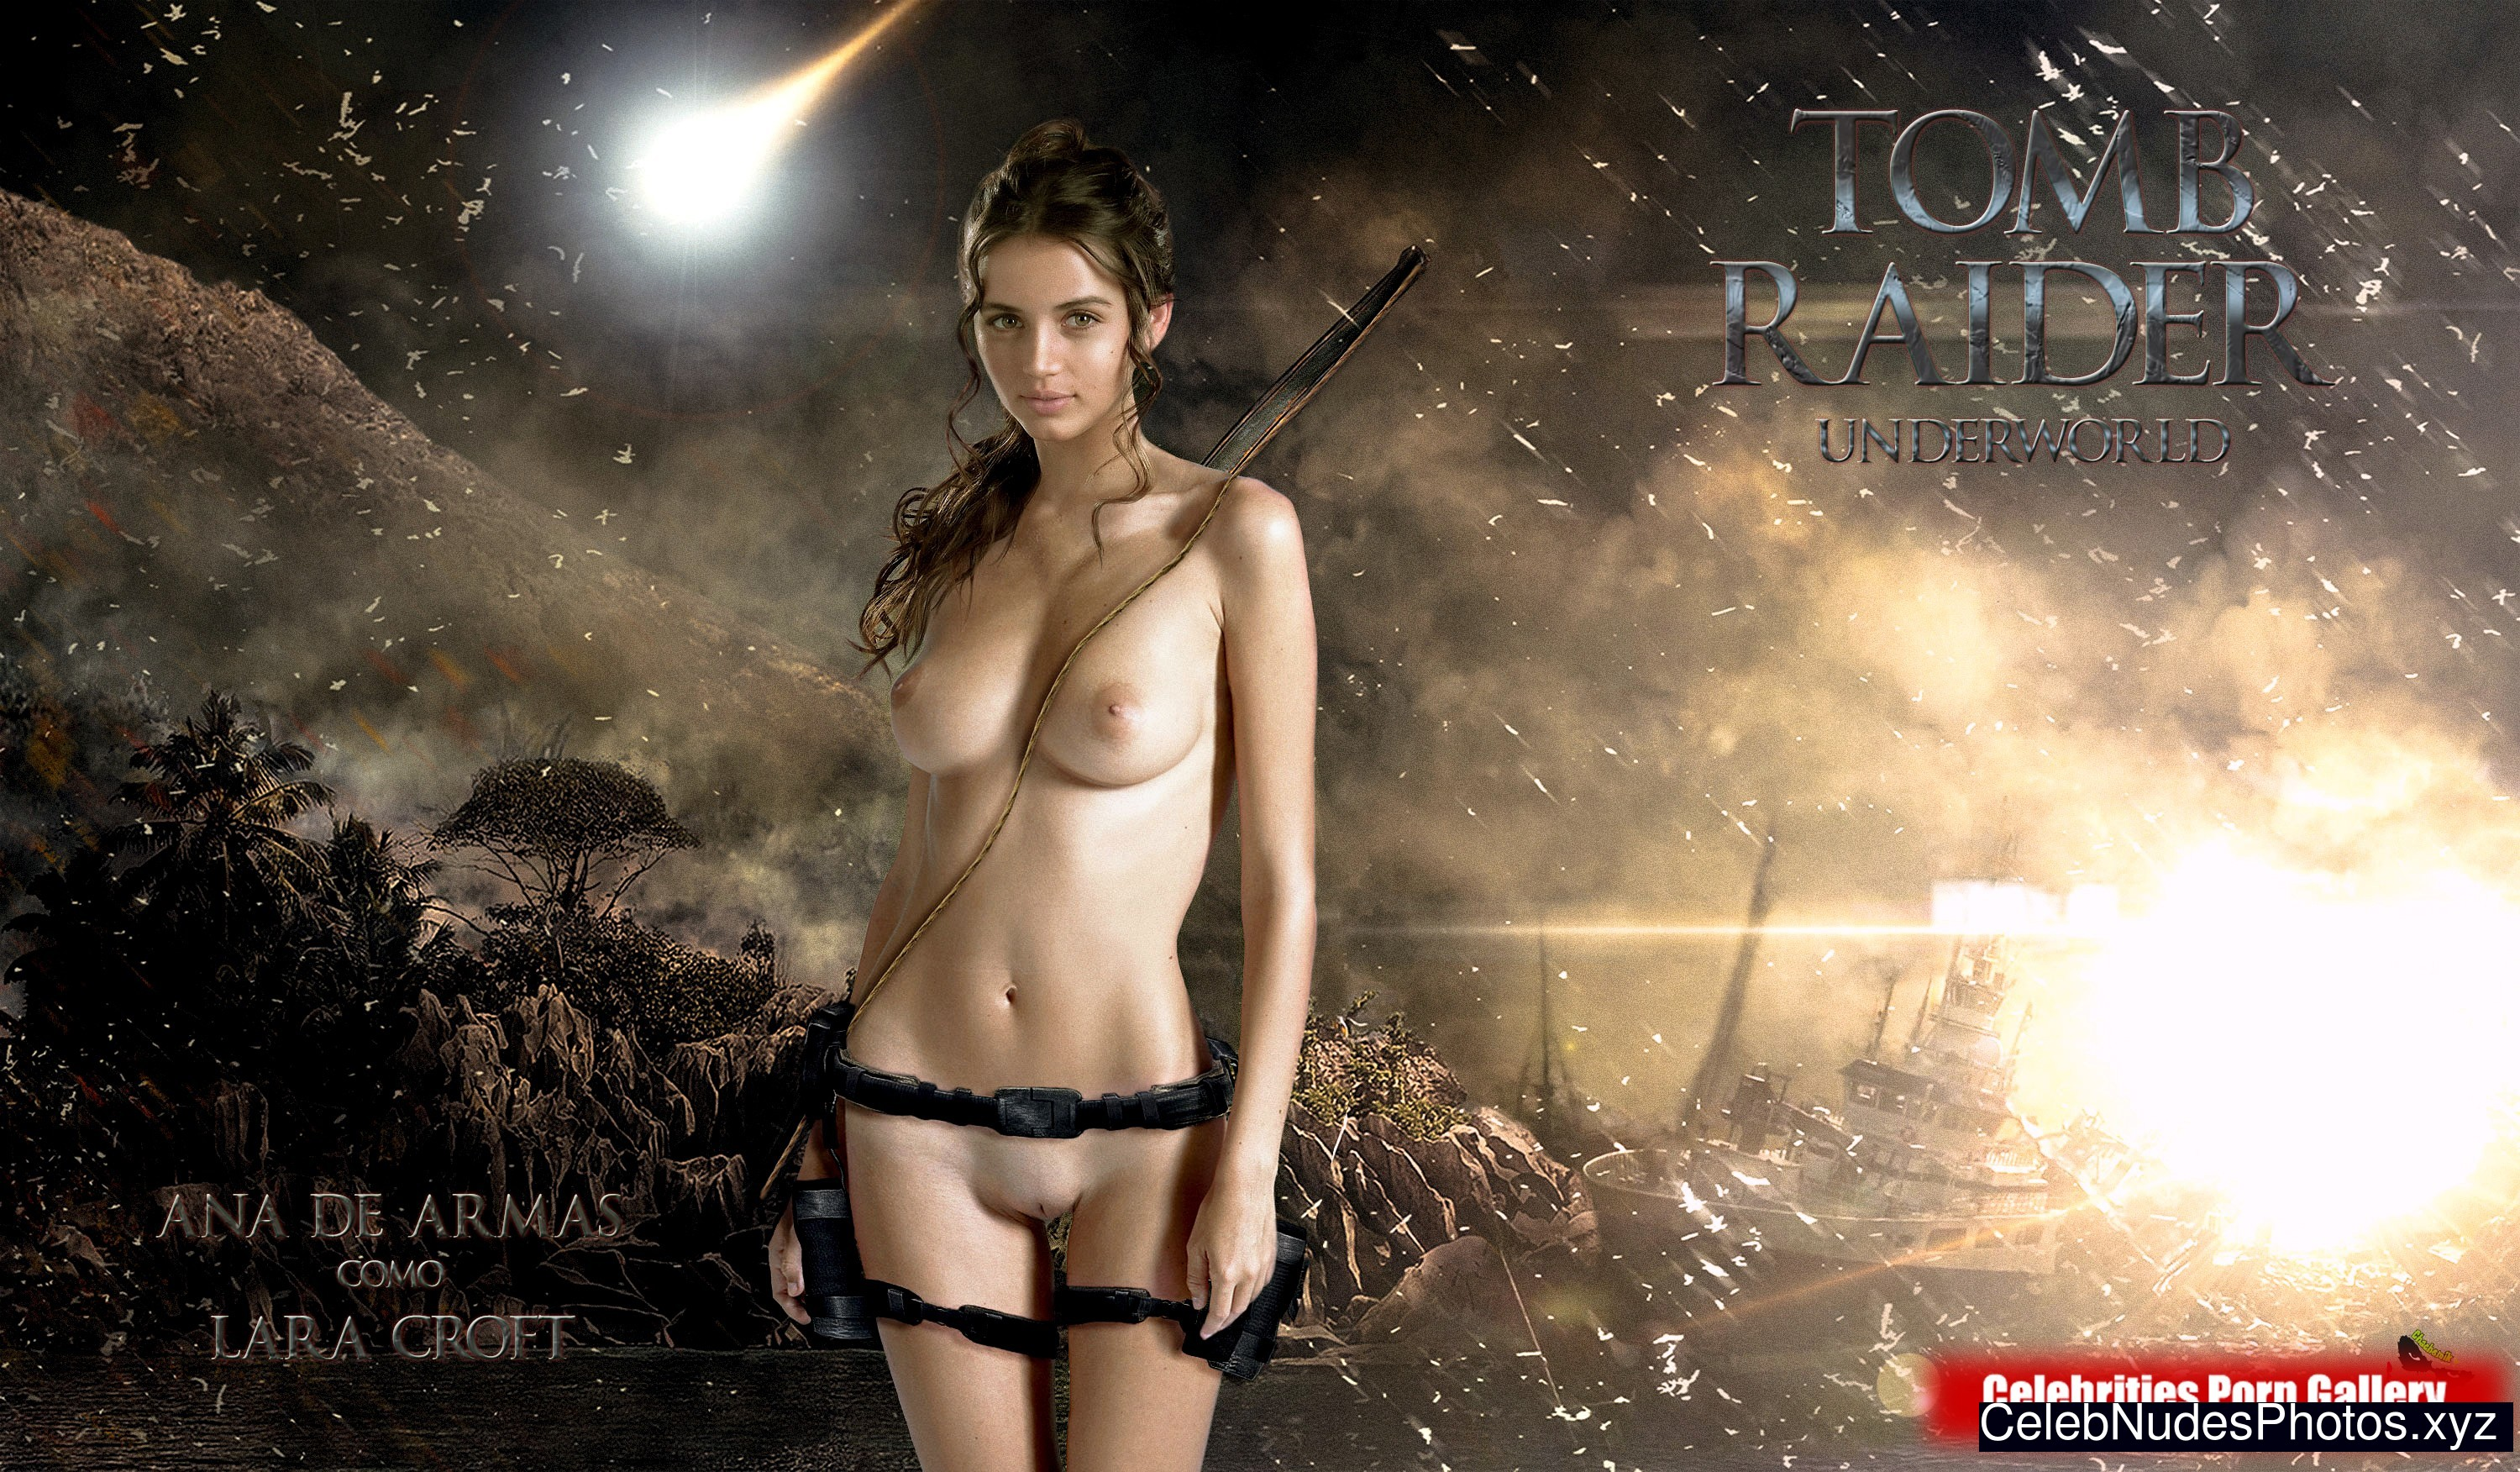 Cecilia Galliano Naked Great celeb nudes photos - page 73 of 110 - celebrity nude pictures